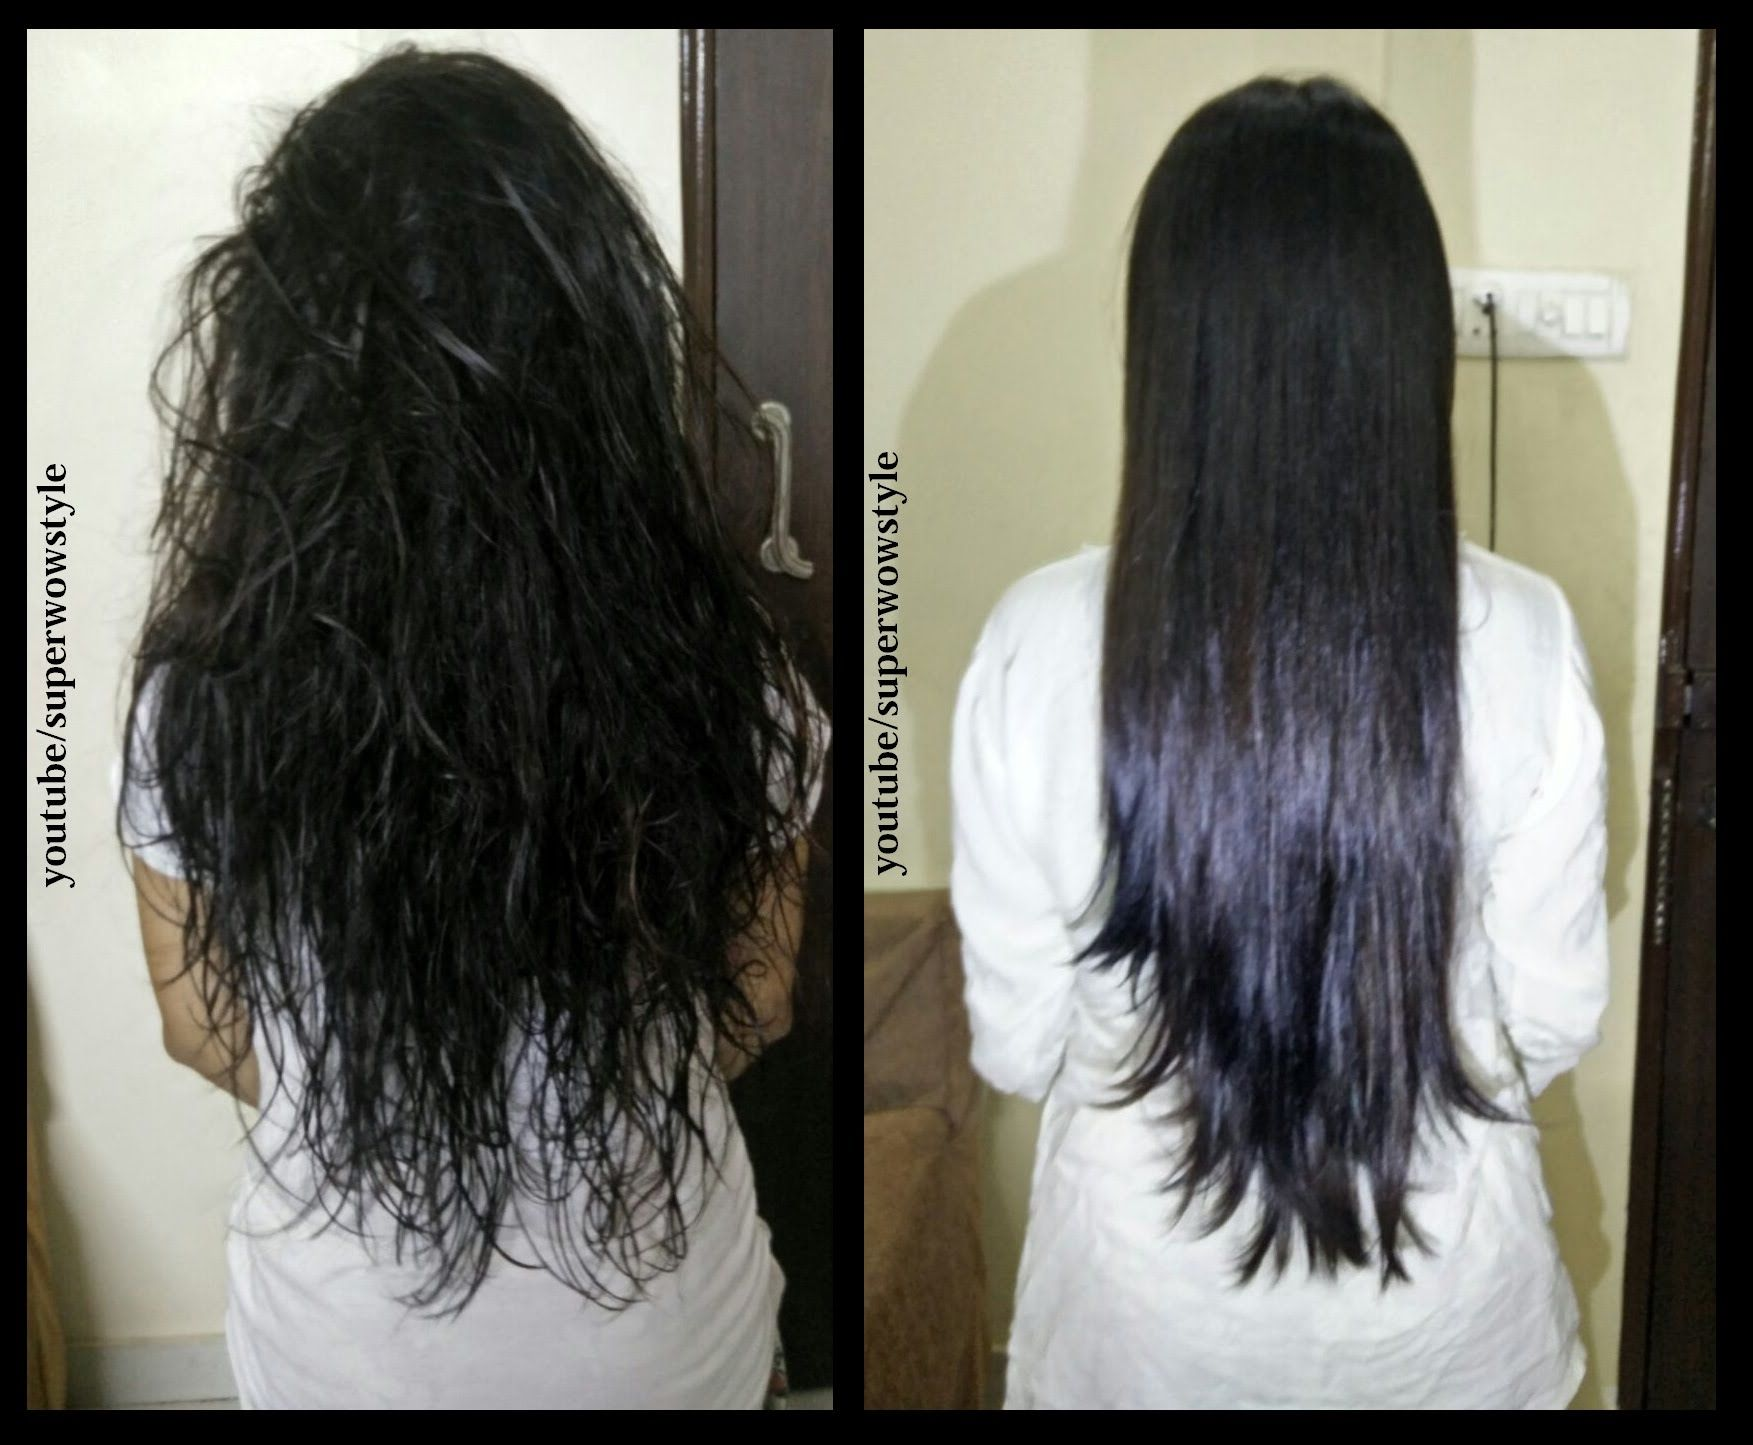 Egg Hair Mask Silky Shiny Hair! (Indian Hair Care